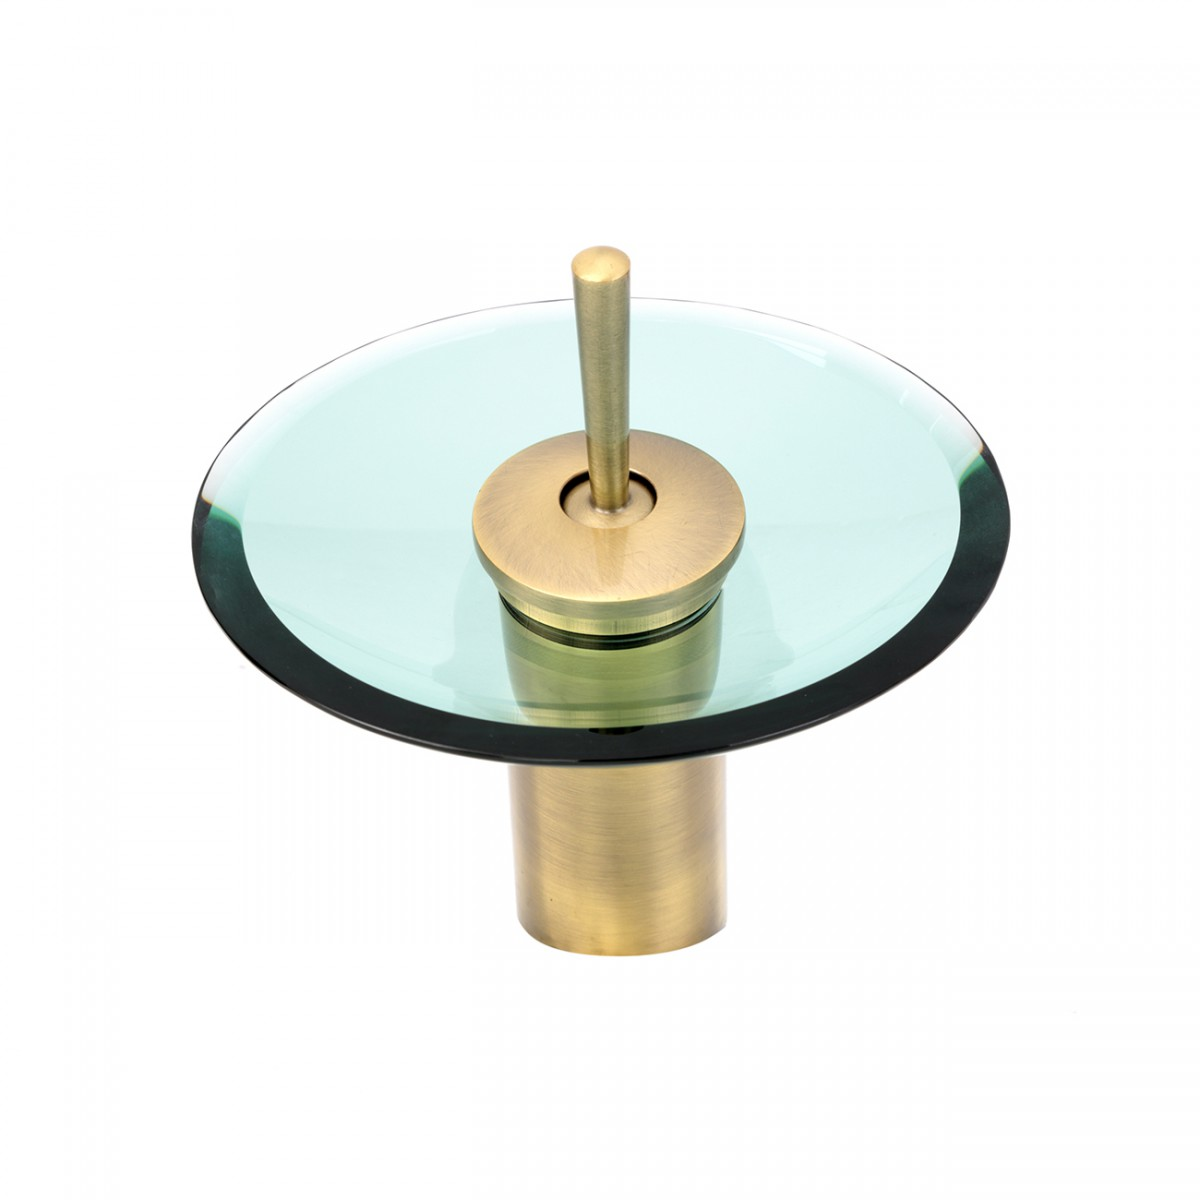 Waterfall Faucet Heavy Antique Brass 7H Glass Short Glass plate Waterfall Sink Faucet Waterfall Bathroom Faucets Glass Disk Faucet